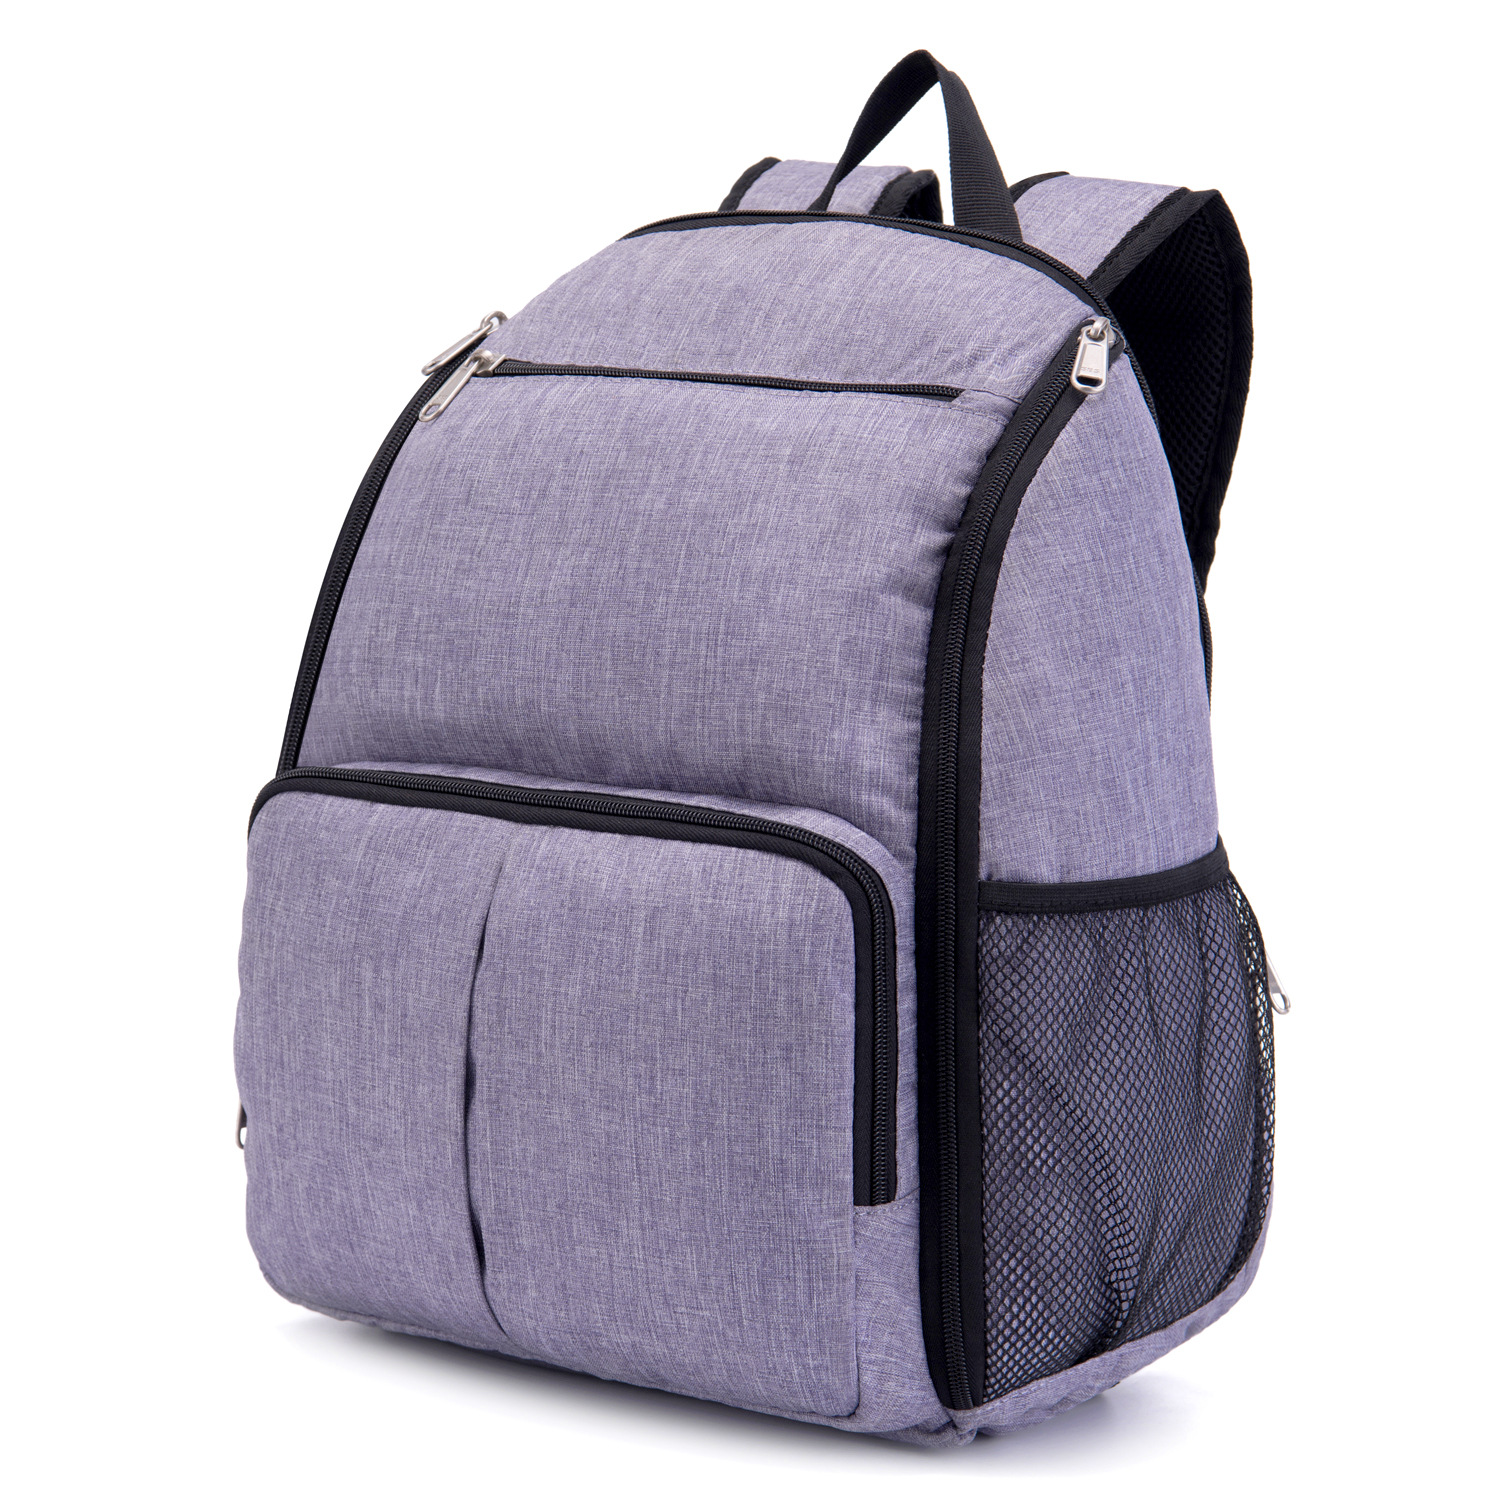 Hot Selling Korean-style Diaper Bag Multi-functional Large-Volume Nylon MOTHER'S Bag Fashion Mommy Bag Aiaper Backpack Wholesale